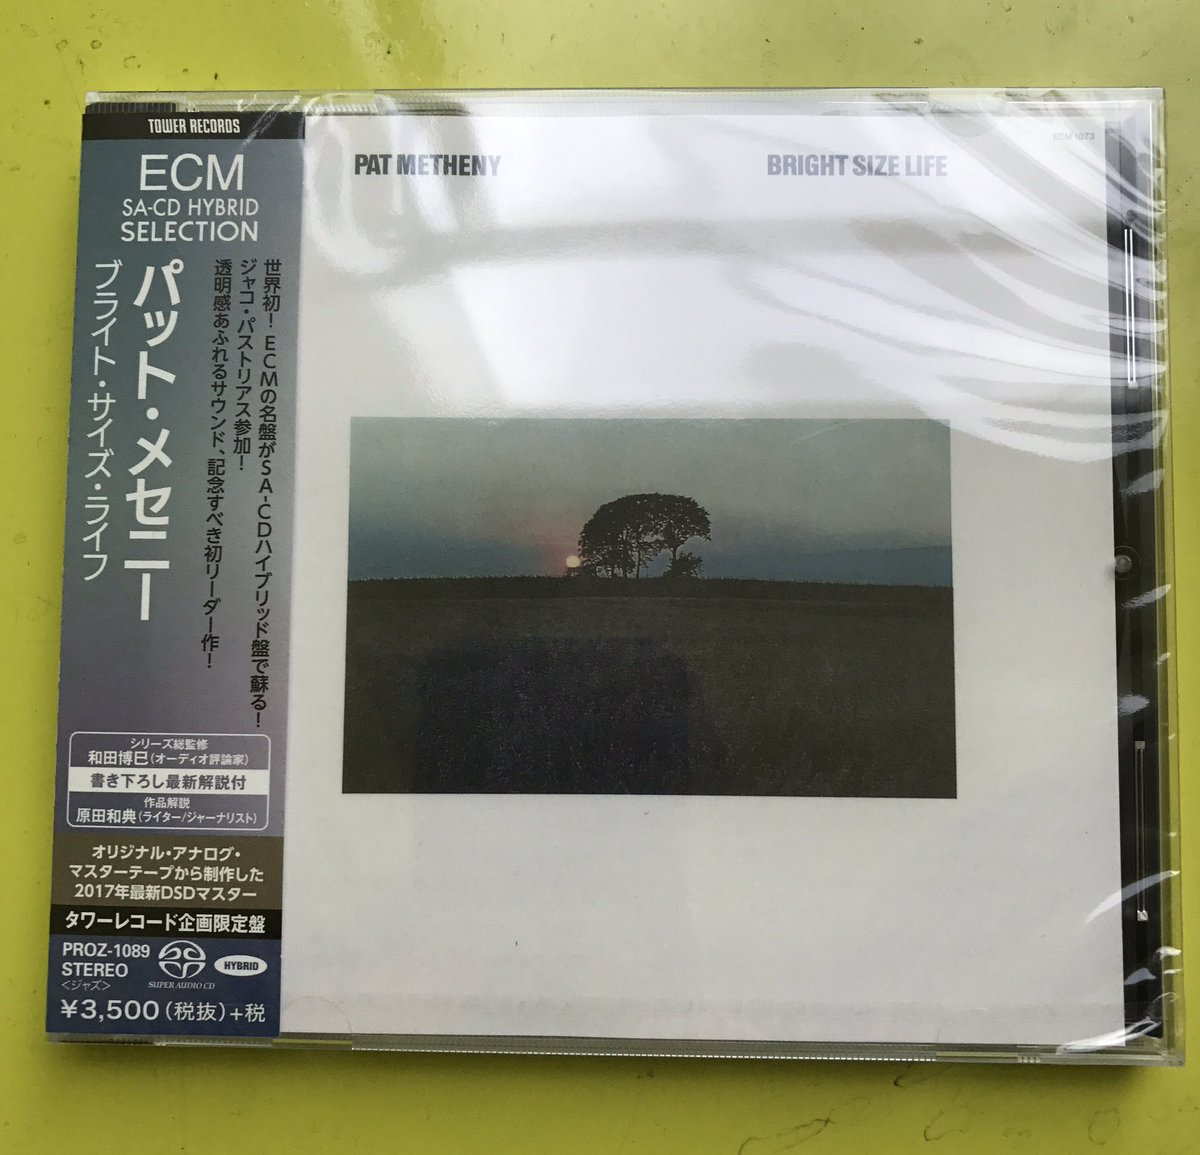 Pat Metheny News On Twitter The Bright Size Life Al Out 03 08 17 Hybrid Sacd Tower Records An Special Release